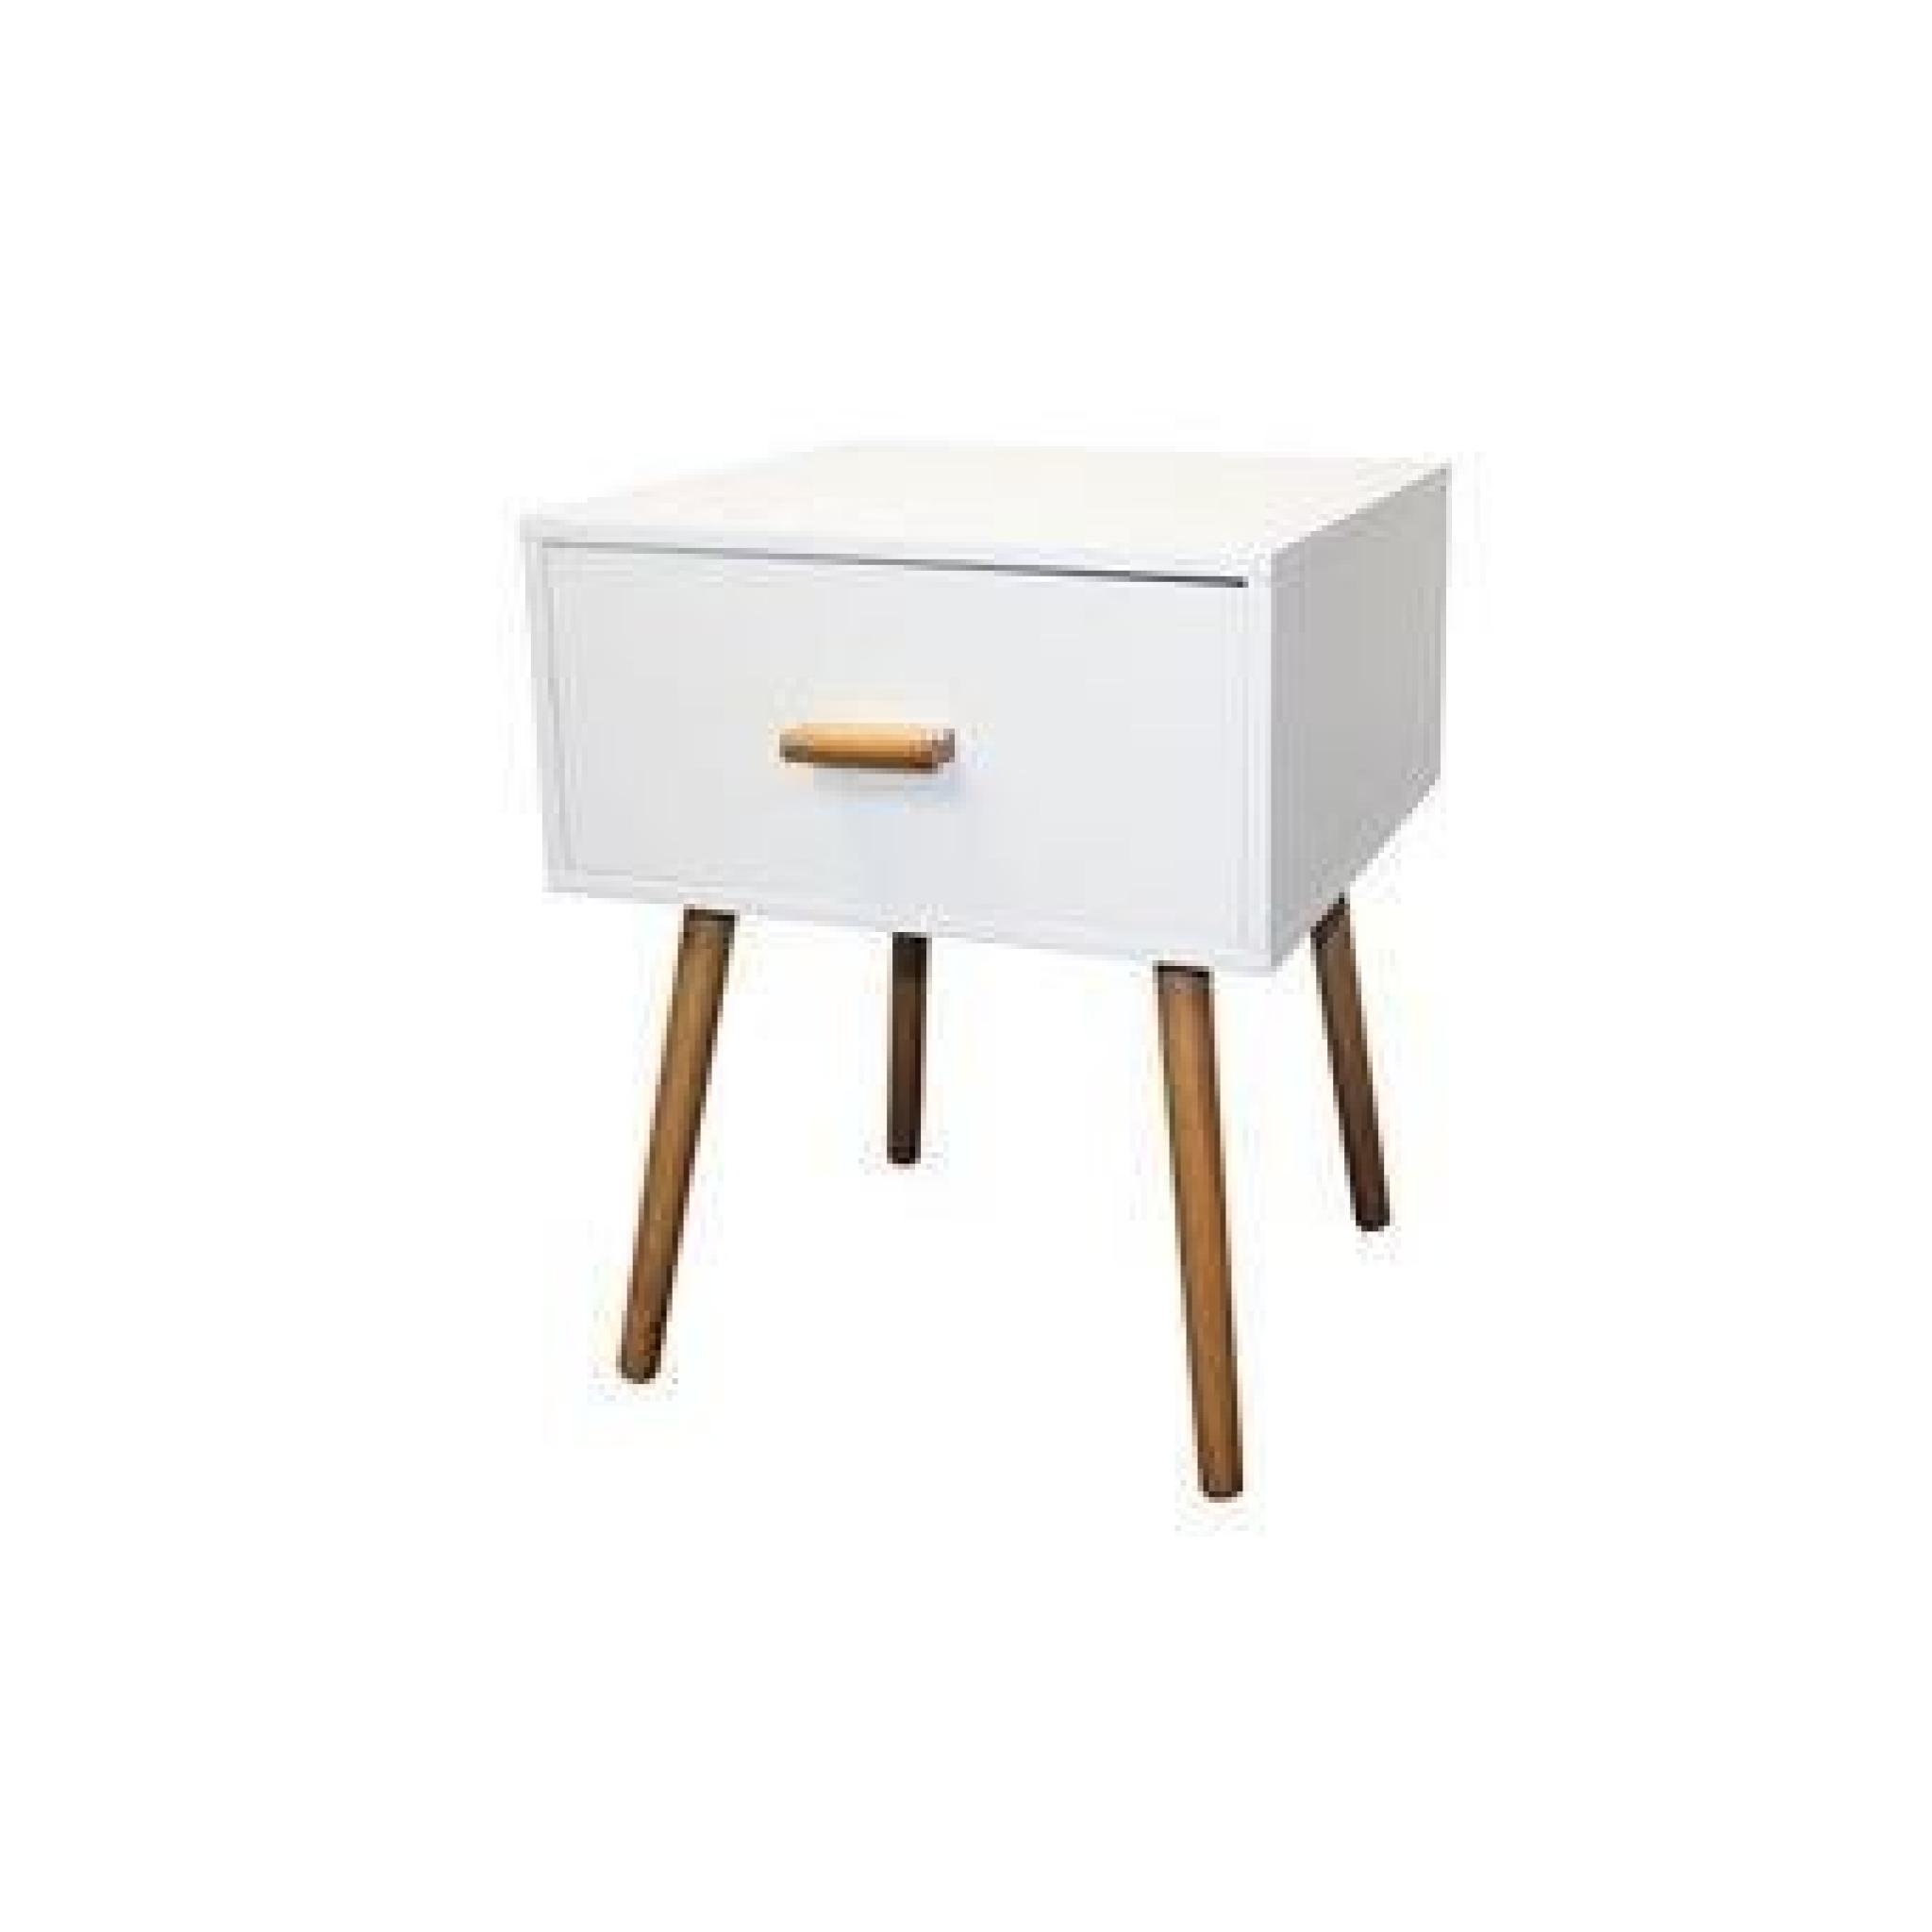 Table de chevet blanc design scandinave achat vente Table basse design scandinave pas cher